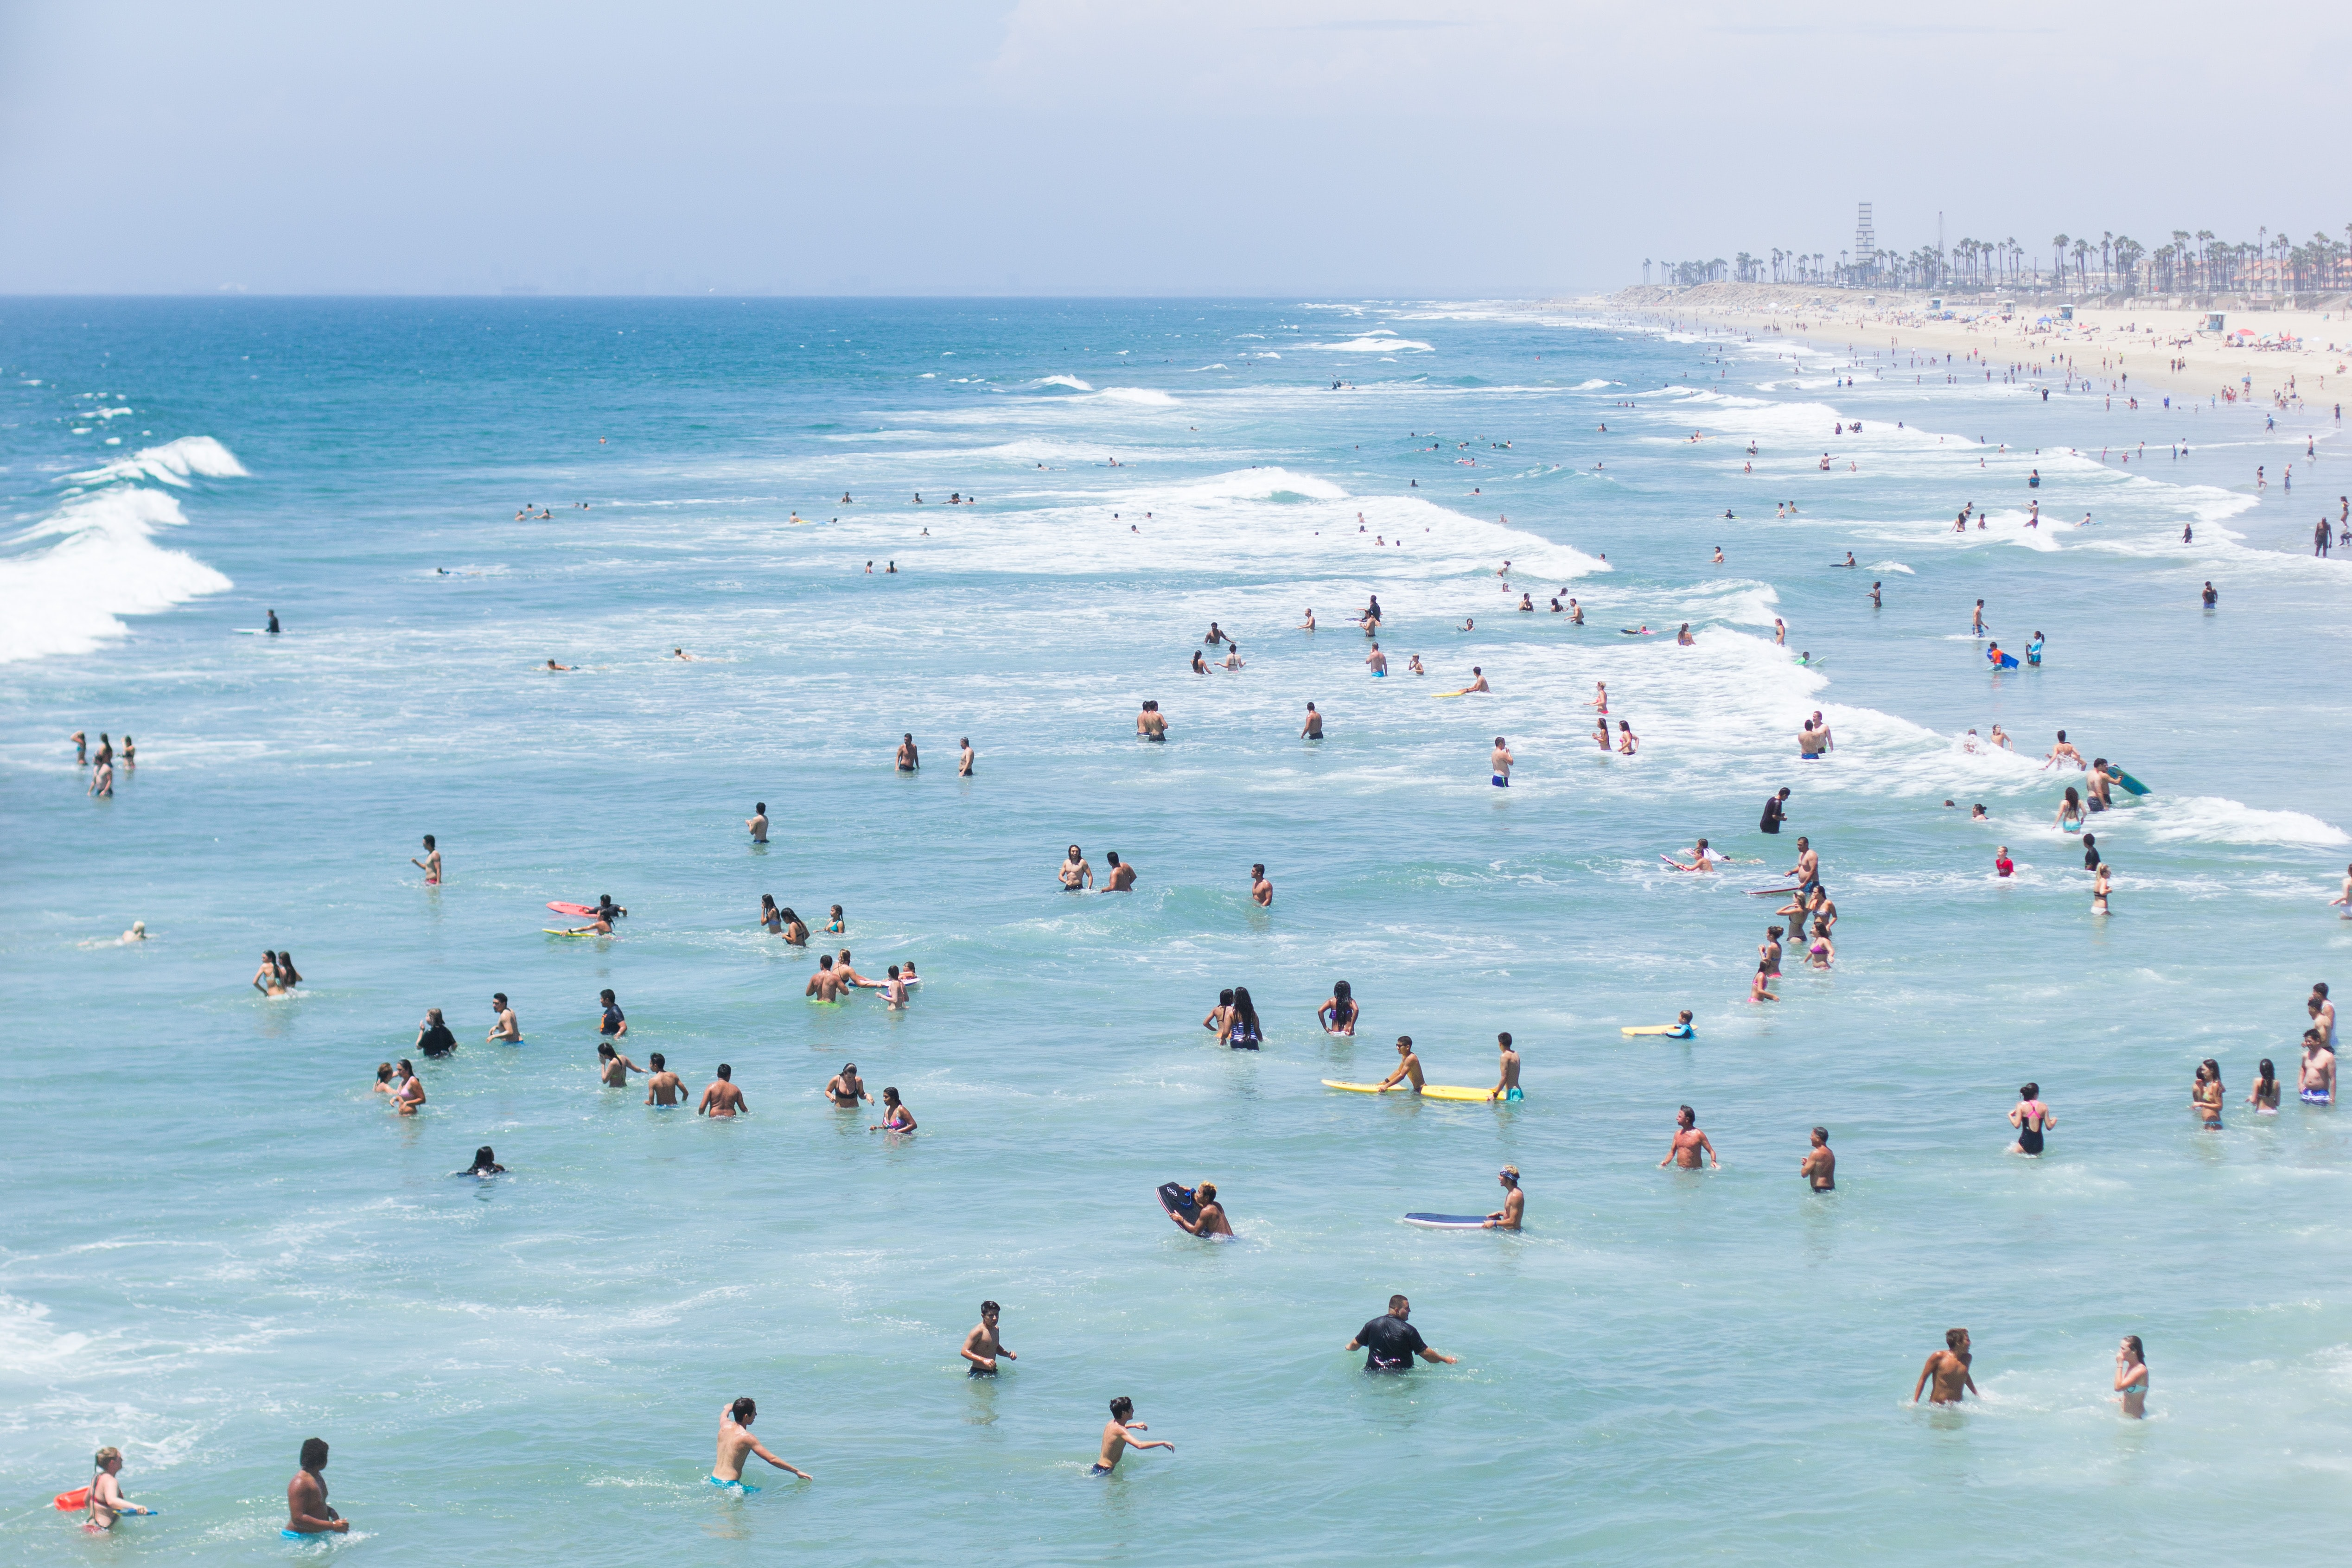 Huntington beach filled with swimmers, surfers and people on the shore